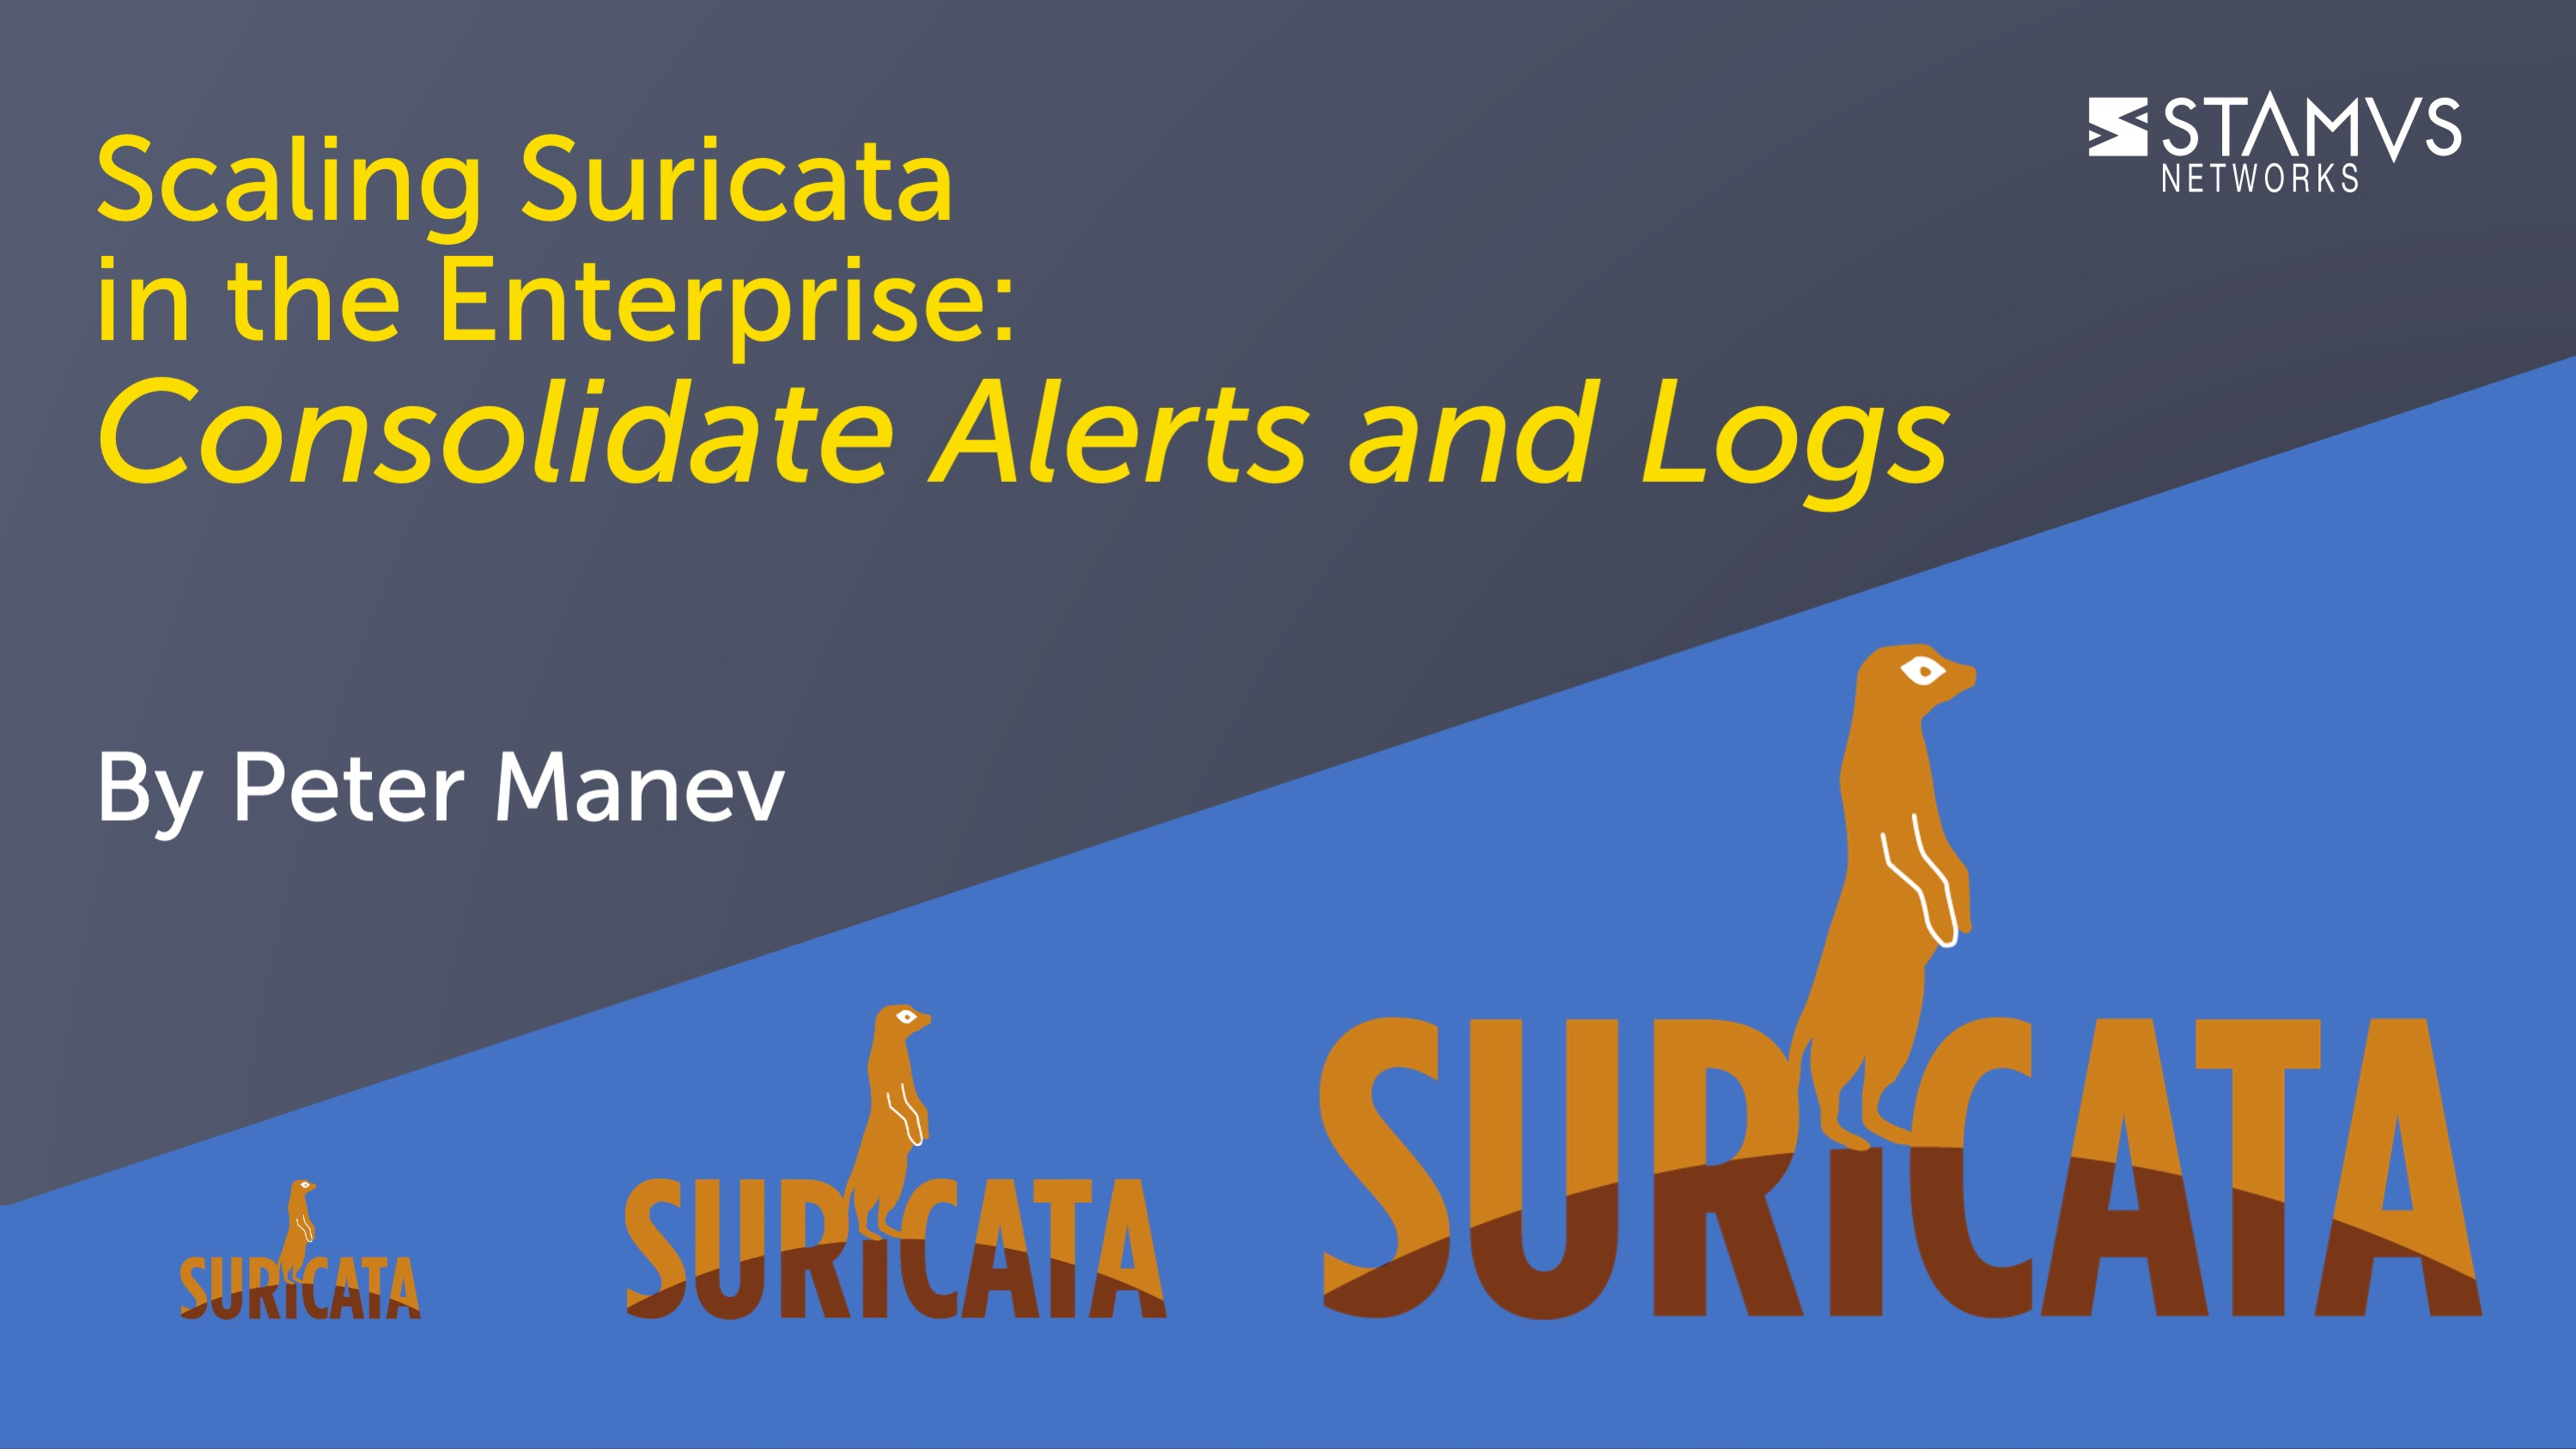 IMAGE: Scaling Suricata in the Enterprise - Consolidate Alerts and Logs